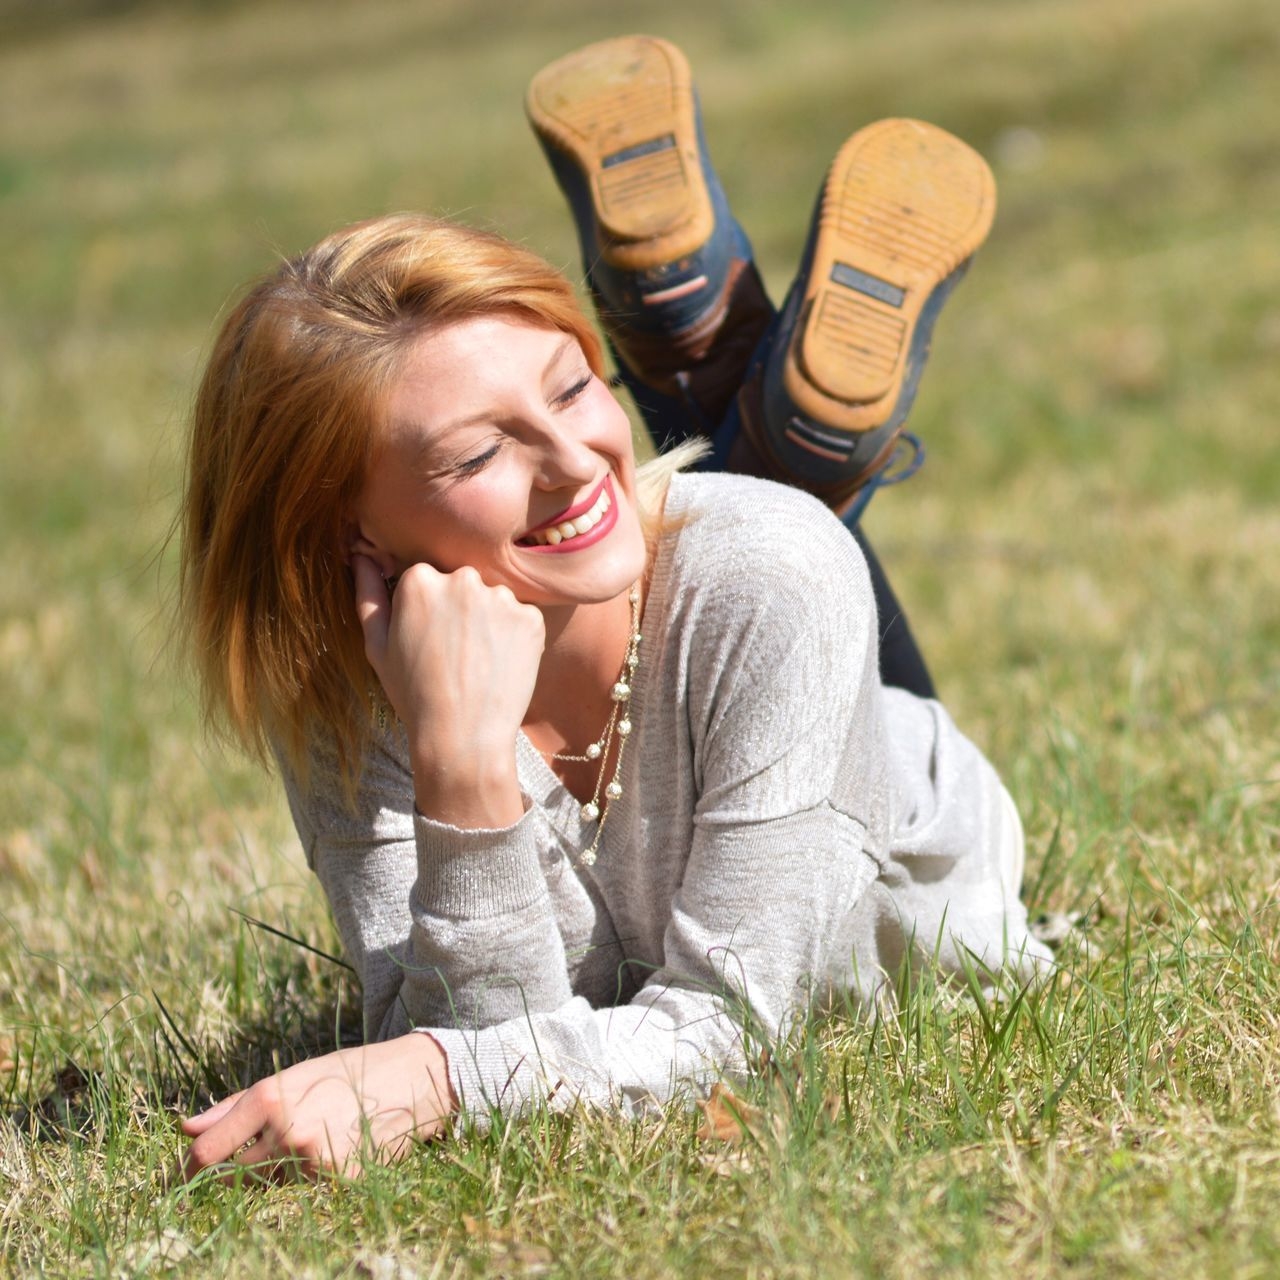 grass, leisure activity, casual clothing, young adult, one person, smiling, day, young women, happiness, outdoors, real people, sitting, relaxation, lying down, lifestyles, nature, low section, blond hair, close-up, people